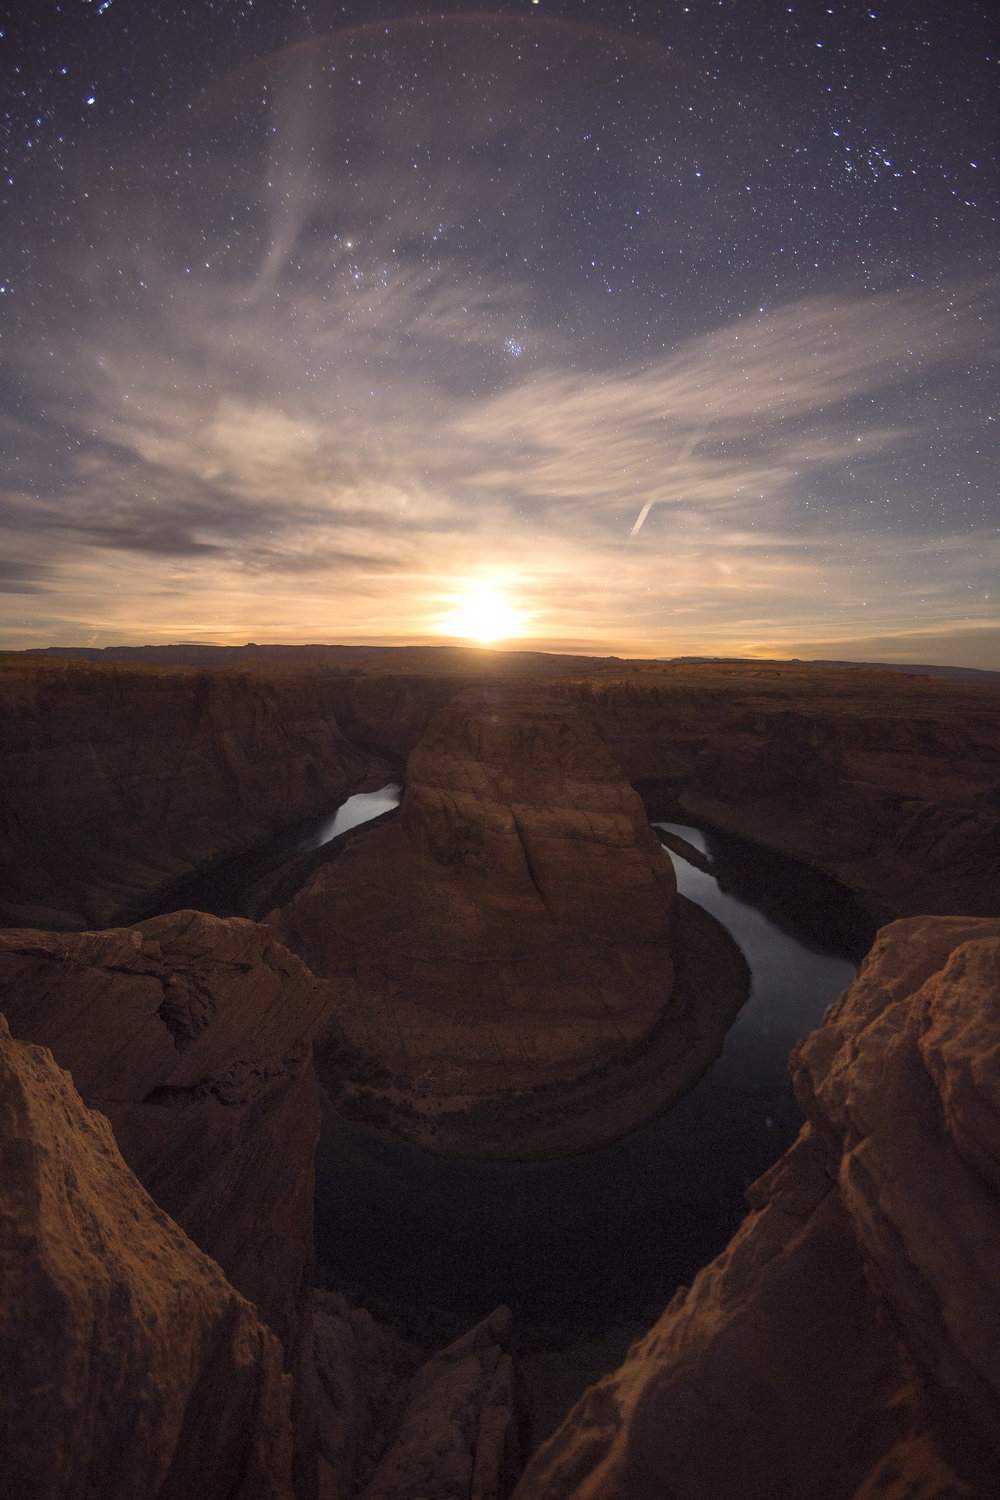 Moonset at Horseshoe Bend in Page, Arizona